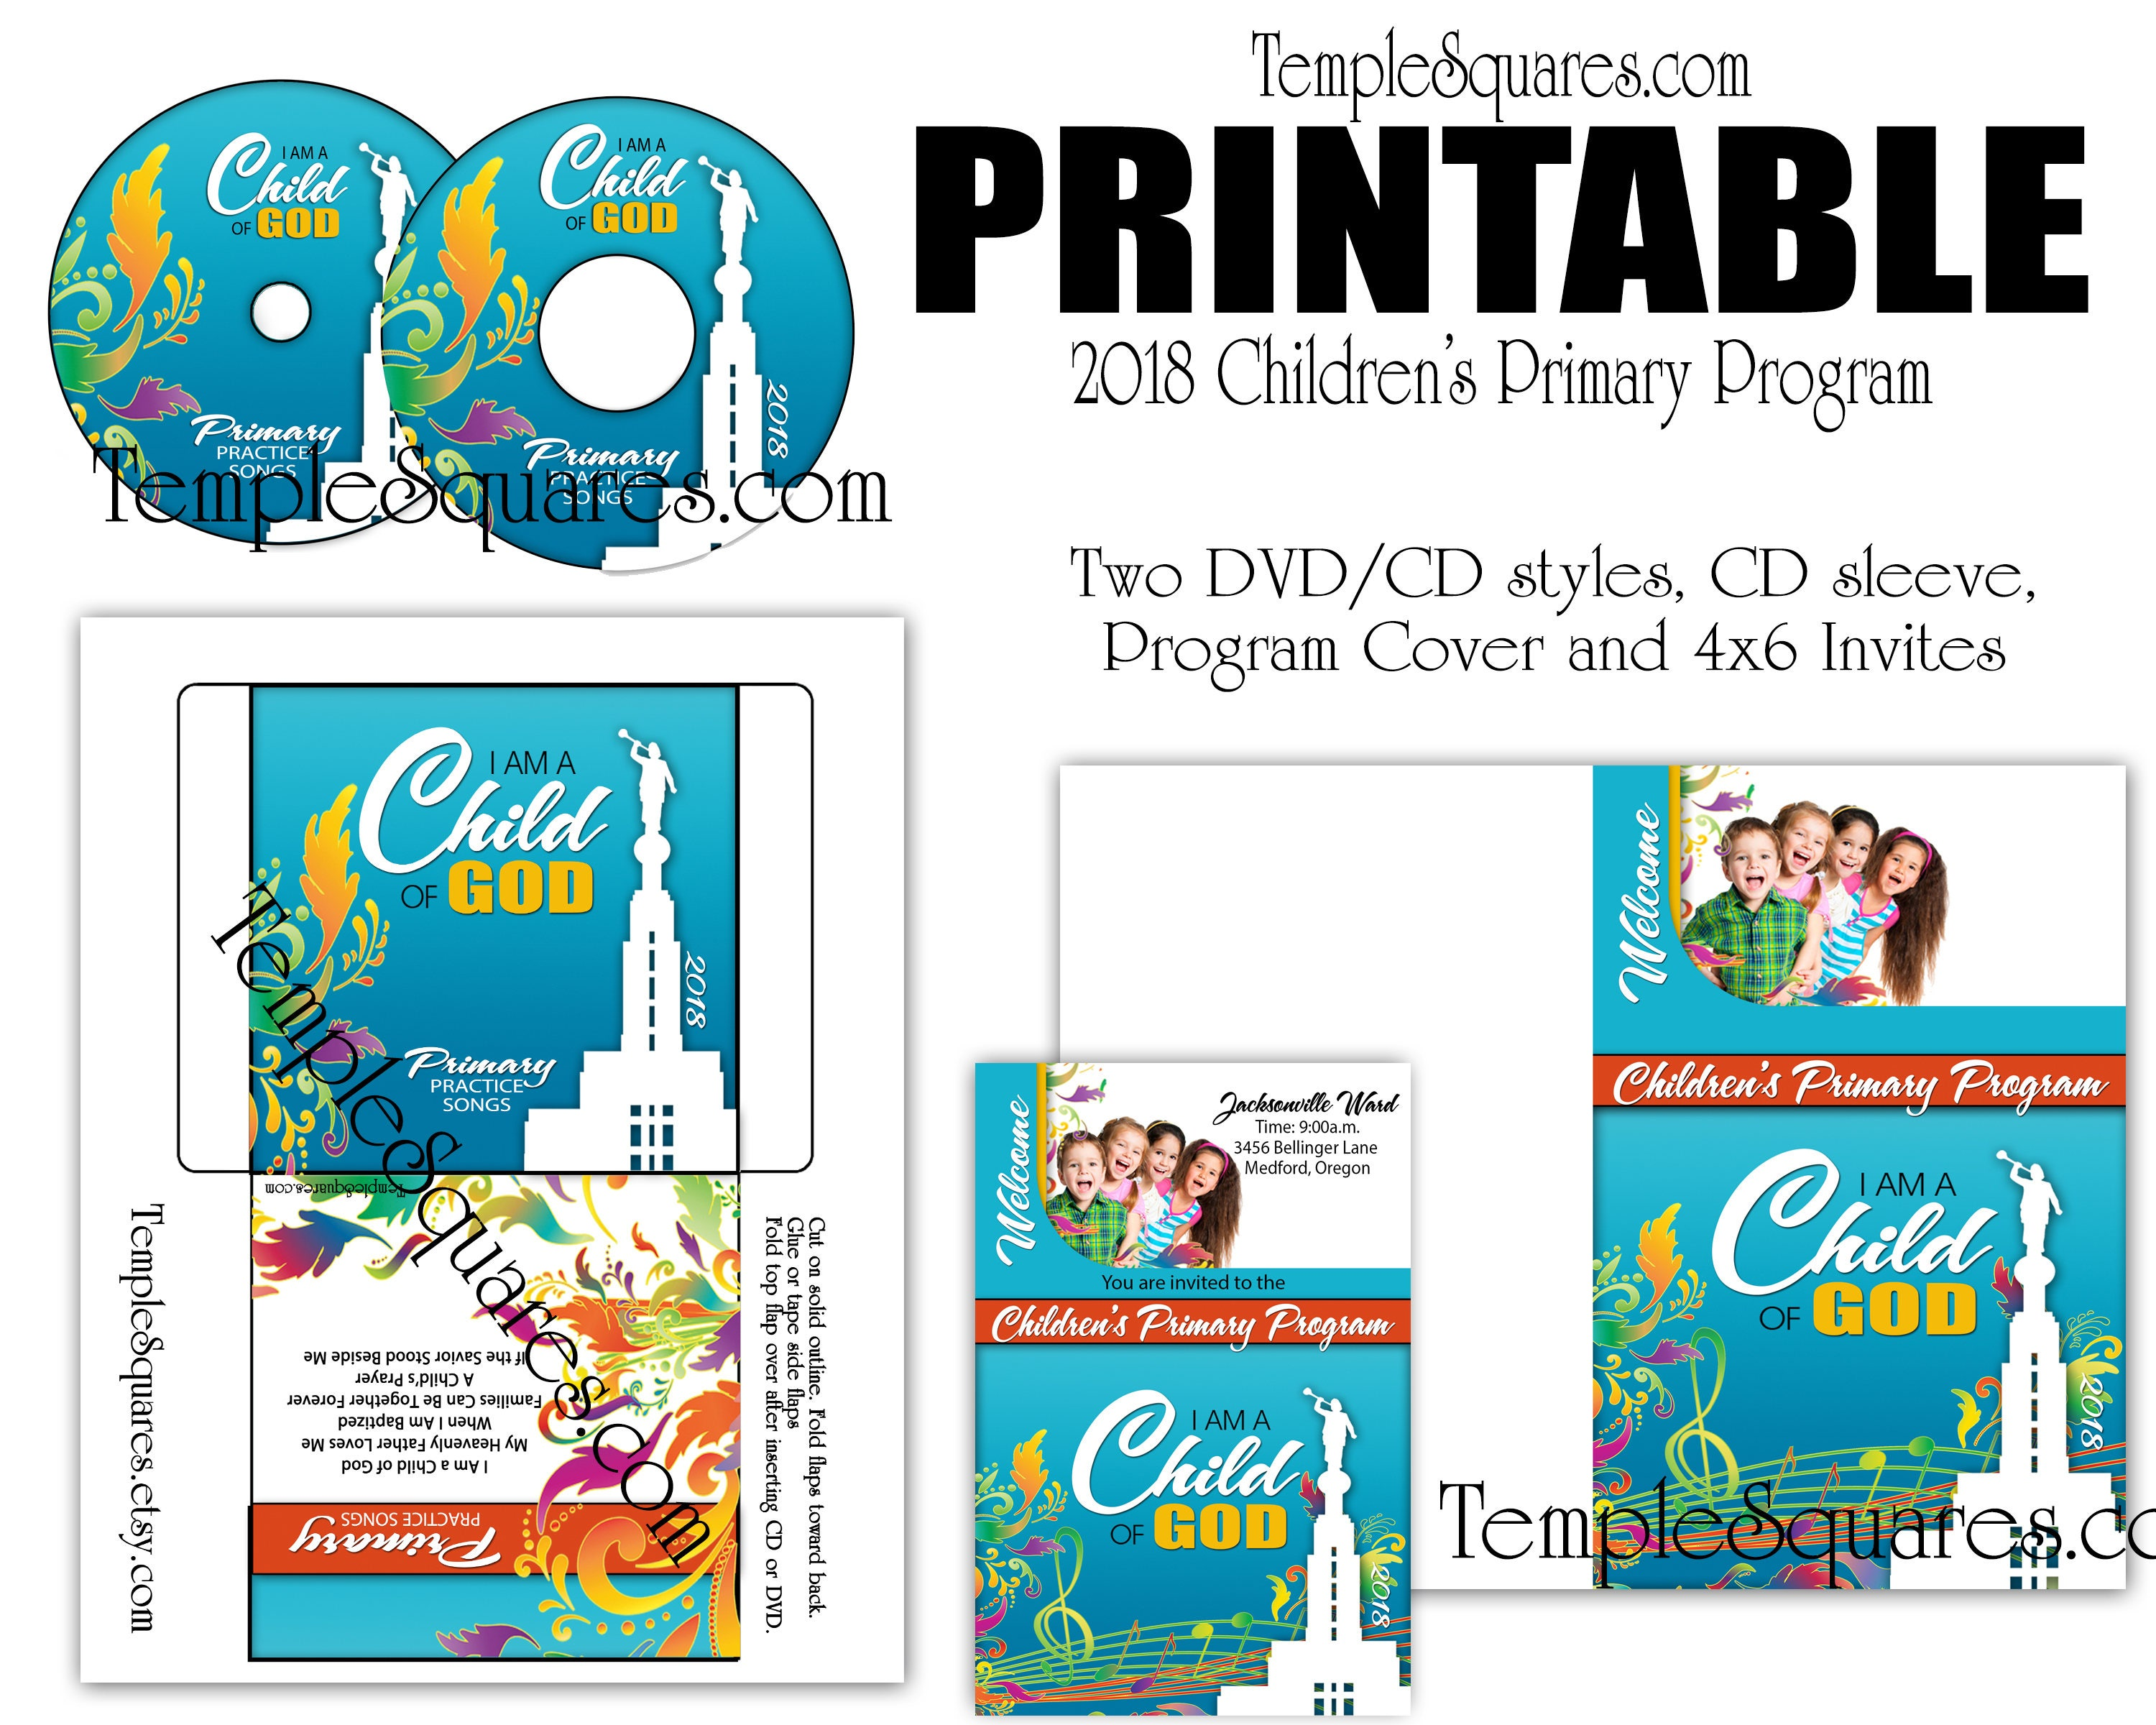 graphic about Printable Cd Labels identify Printable CD labels for 2018 Childrens Main Application